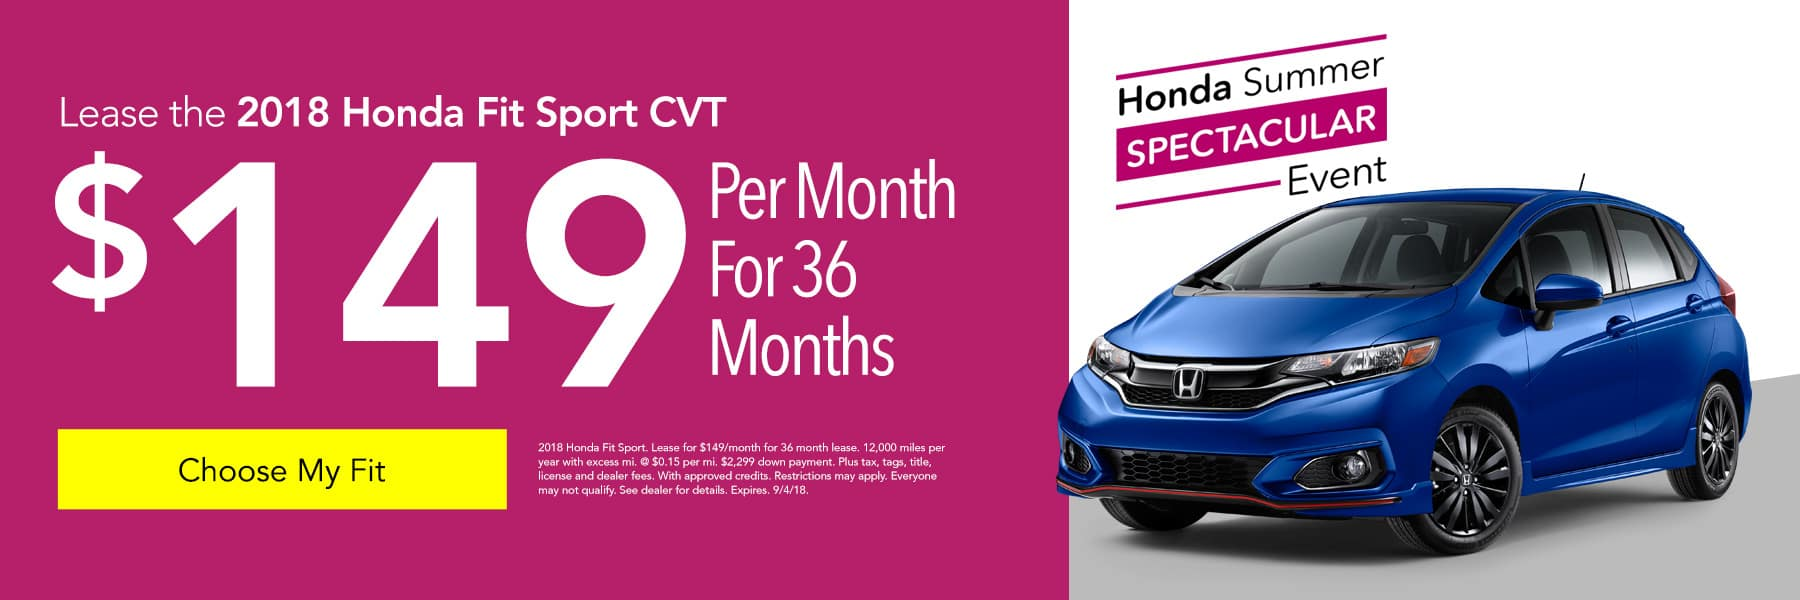 Lease the 2018 Honda Fit Sport CVT for $149/month for 36 months - Choose My Fit